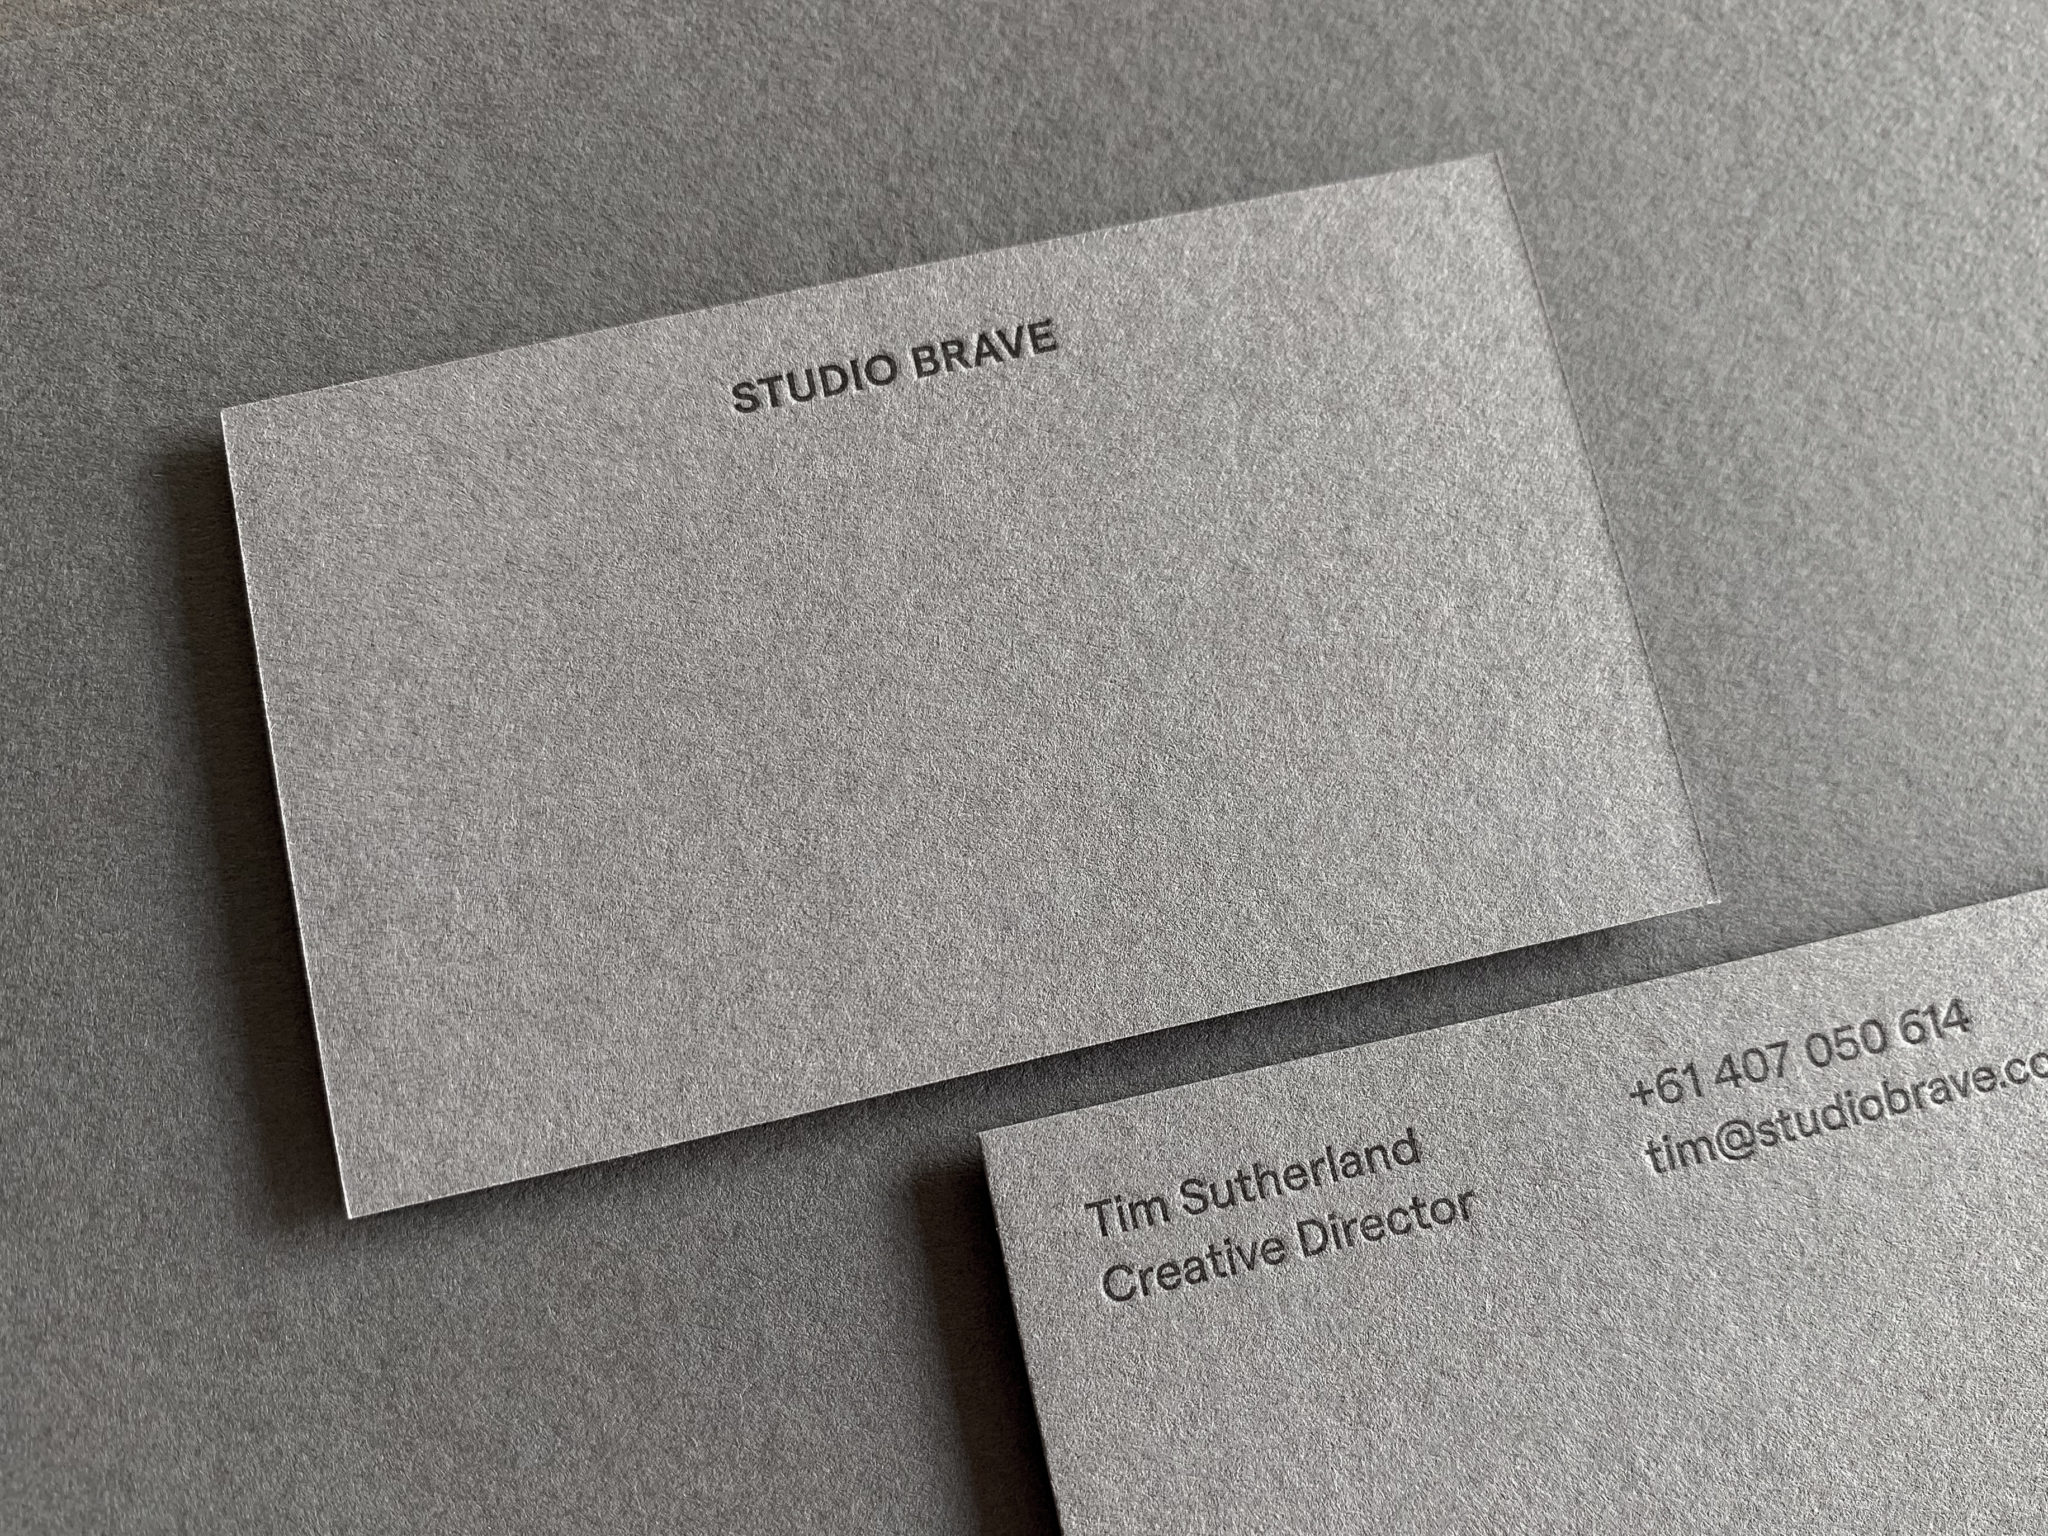 Letterpress Business Card for Studio Brave on Colorplan Smoke 1